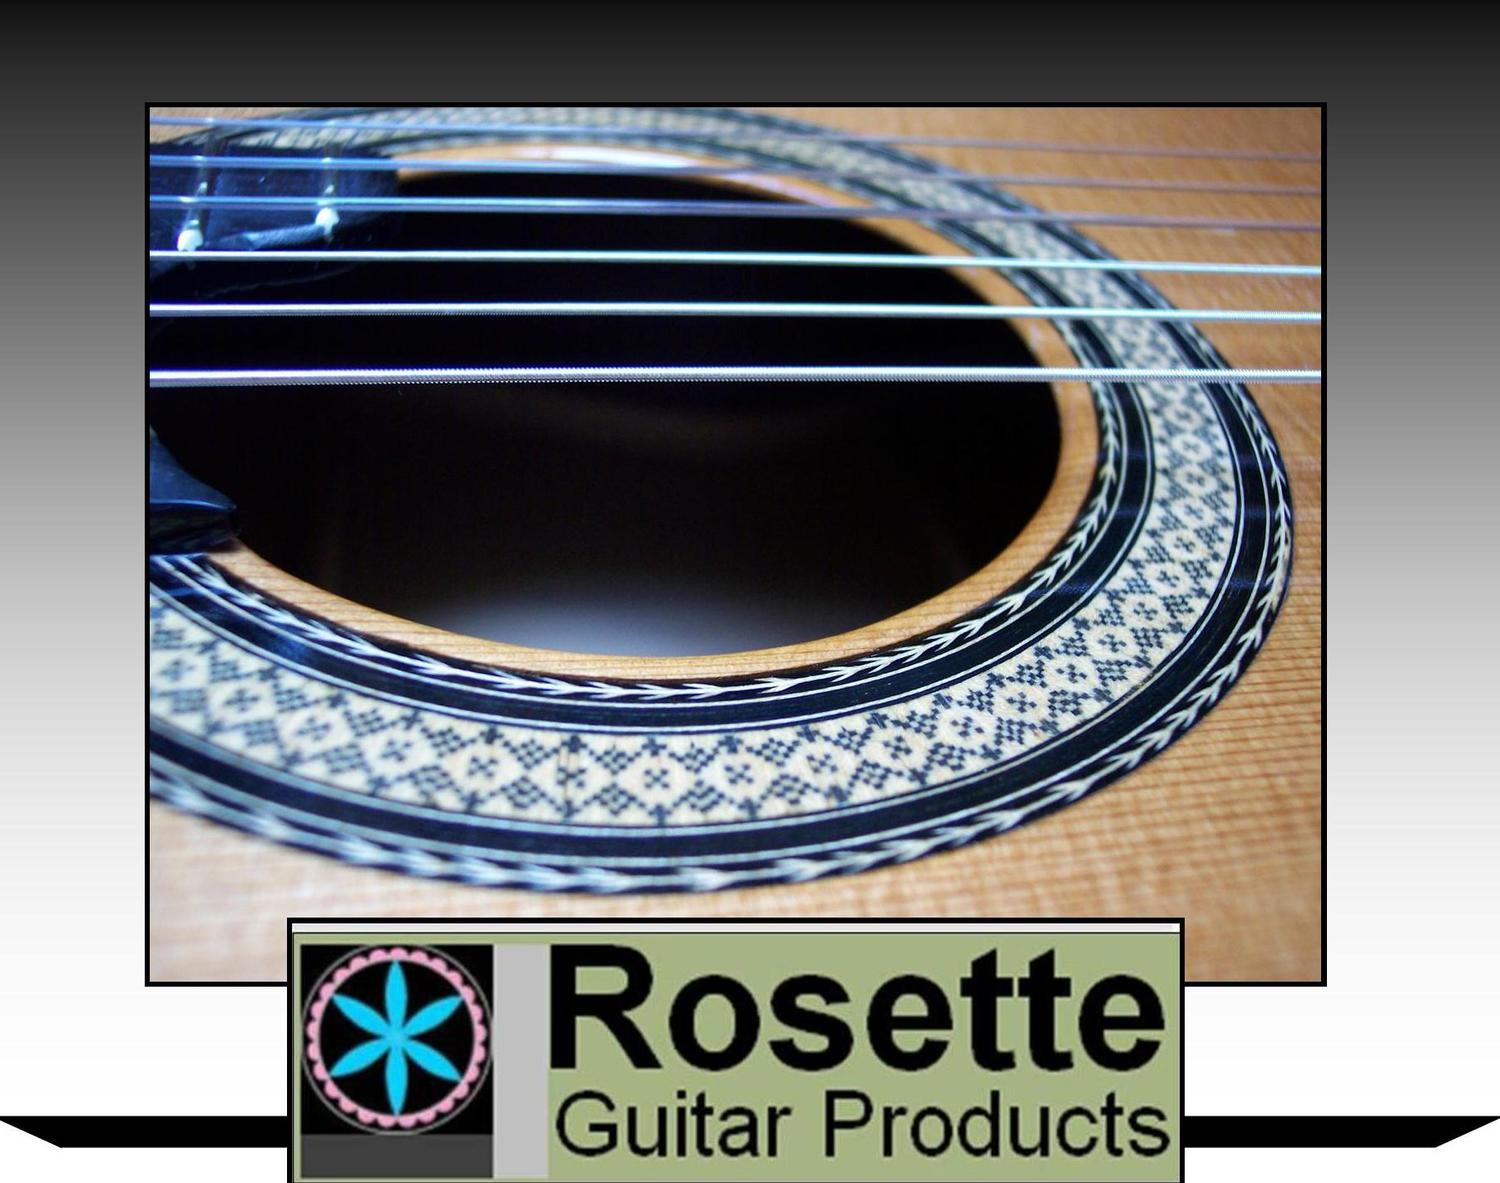 Rosette Guitar Products